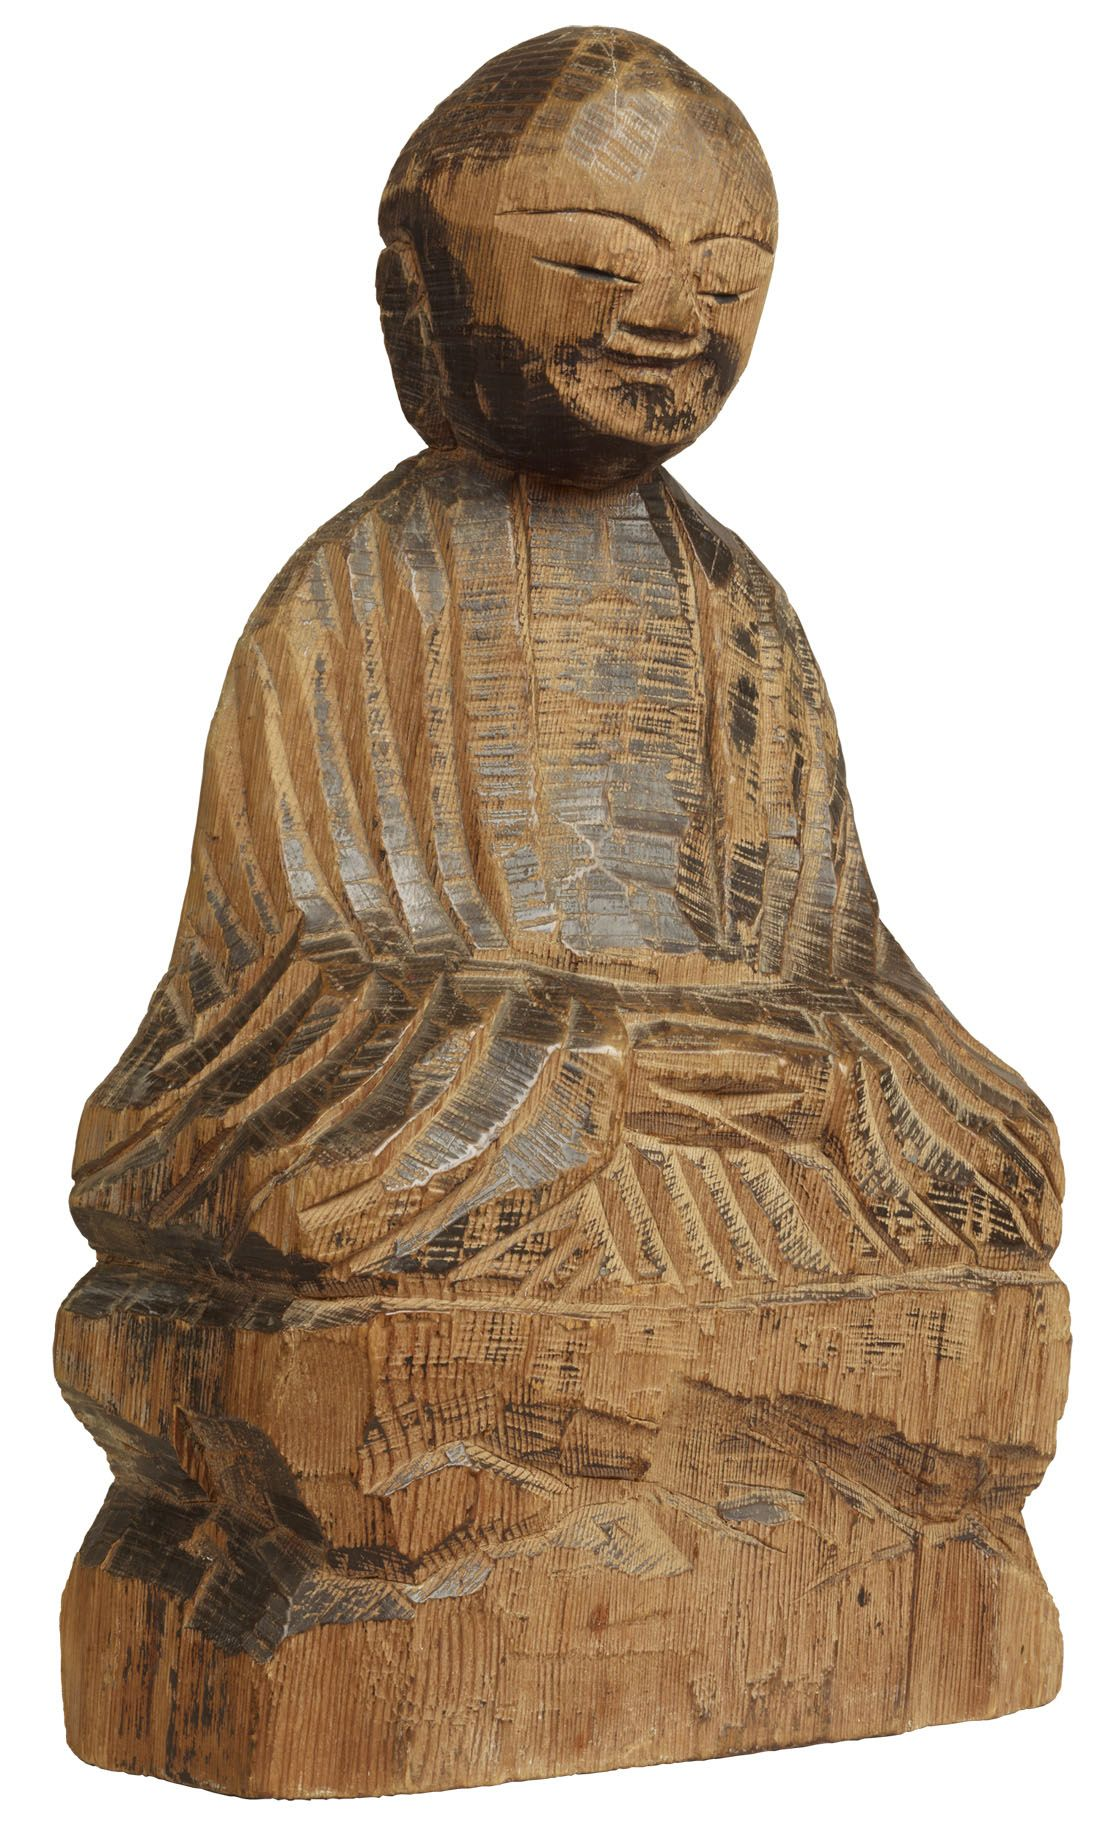 It is said that the Japanese Buddhist monk Enku (1632-1695) carved as many as 120,000 wooden Buddha statues during his lifetime pilgrimage to shrines natio